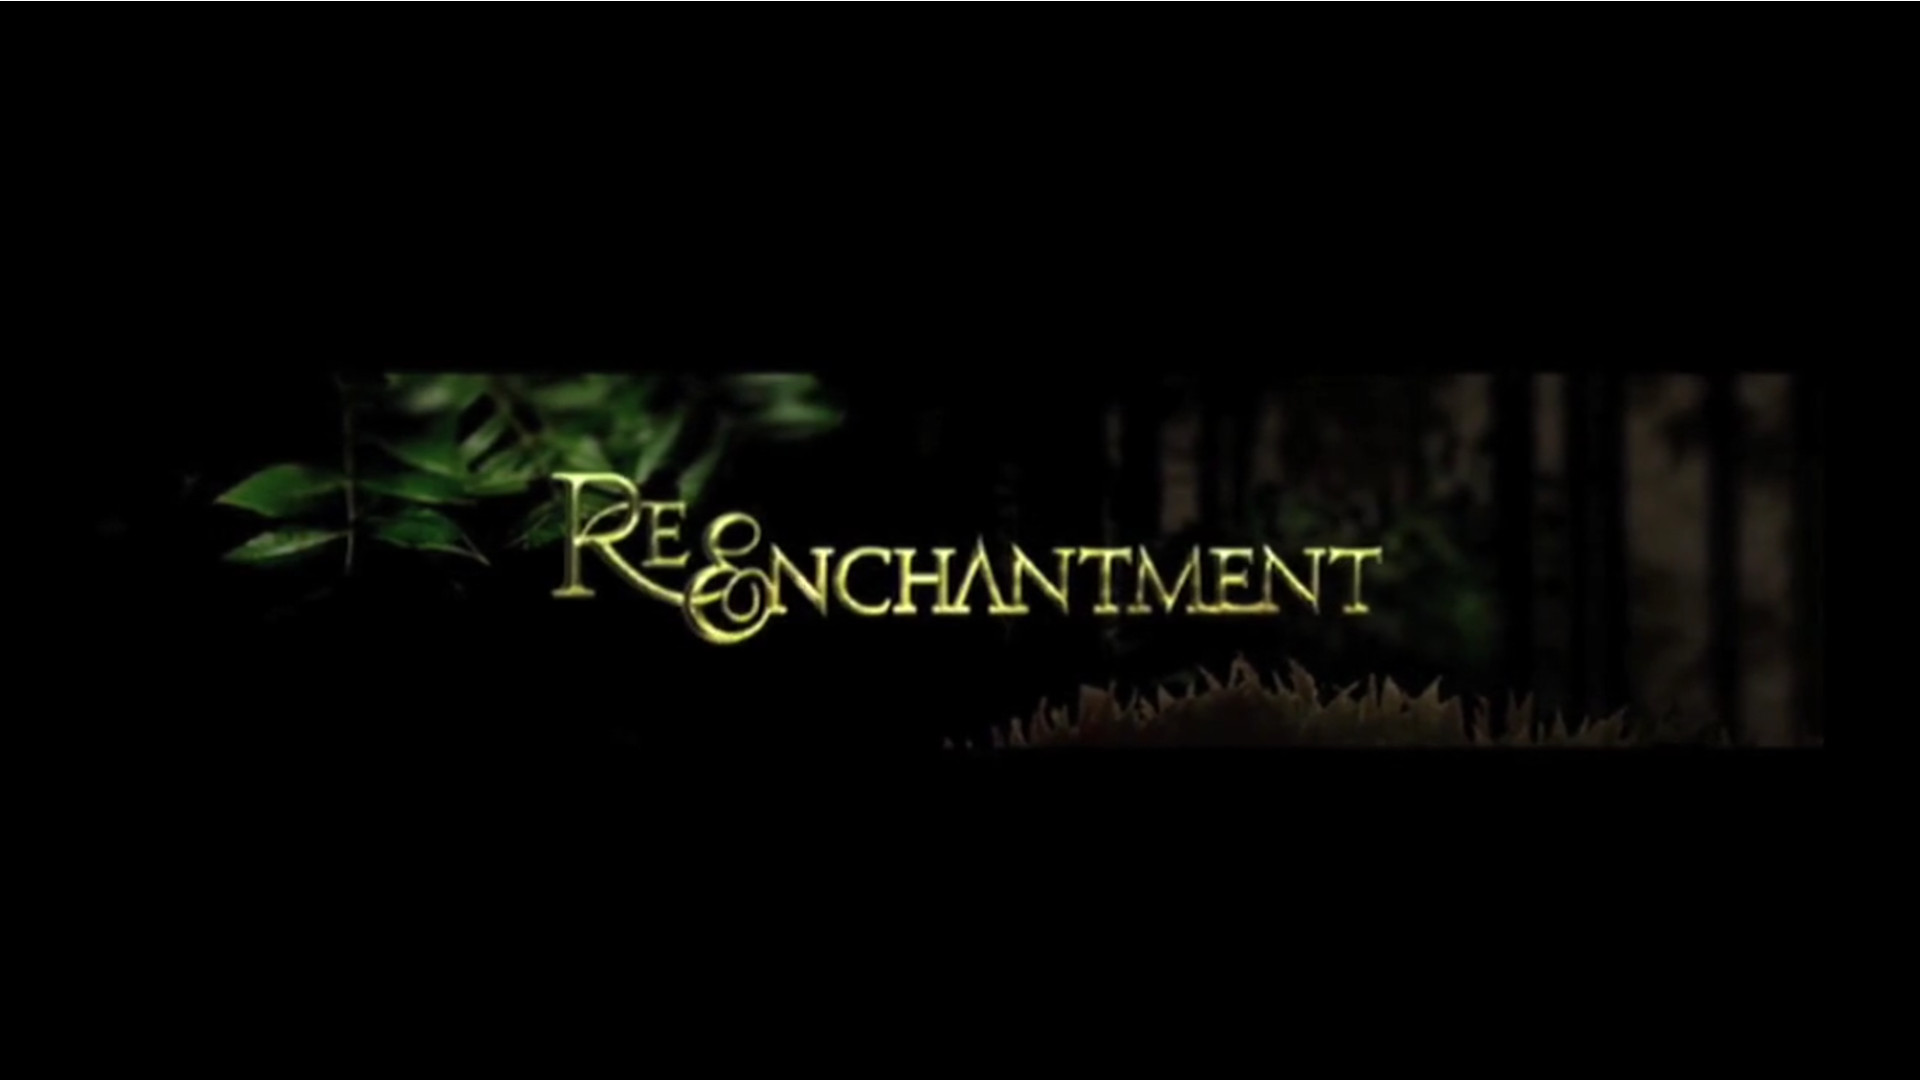 Watch Full Movie - Re Enchantment